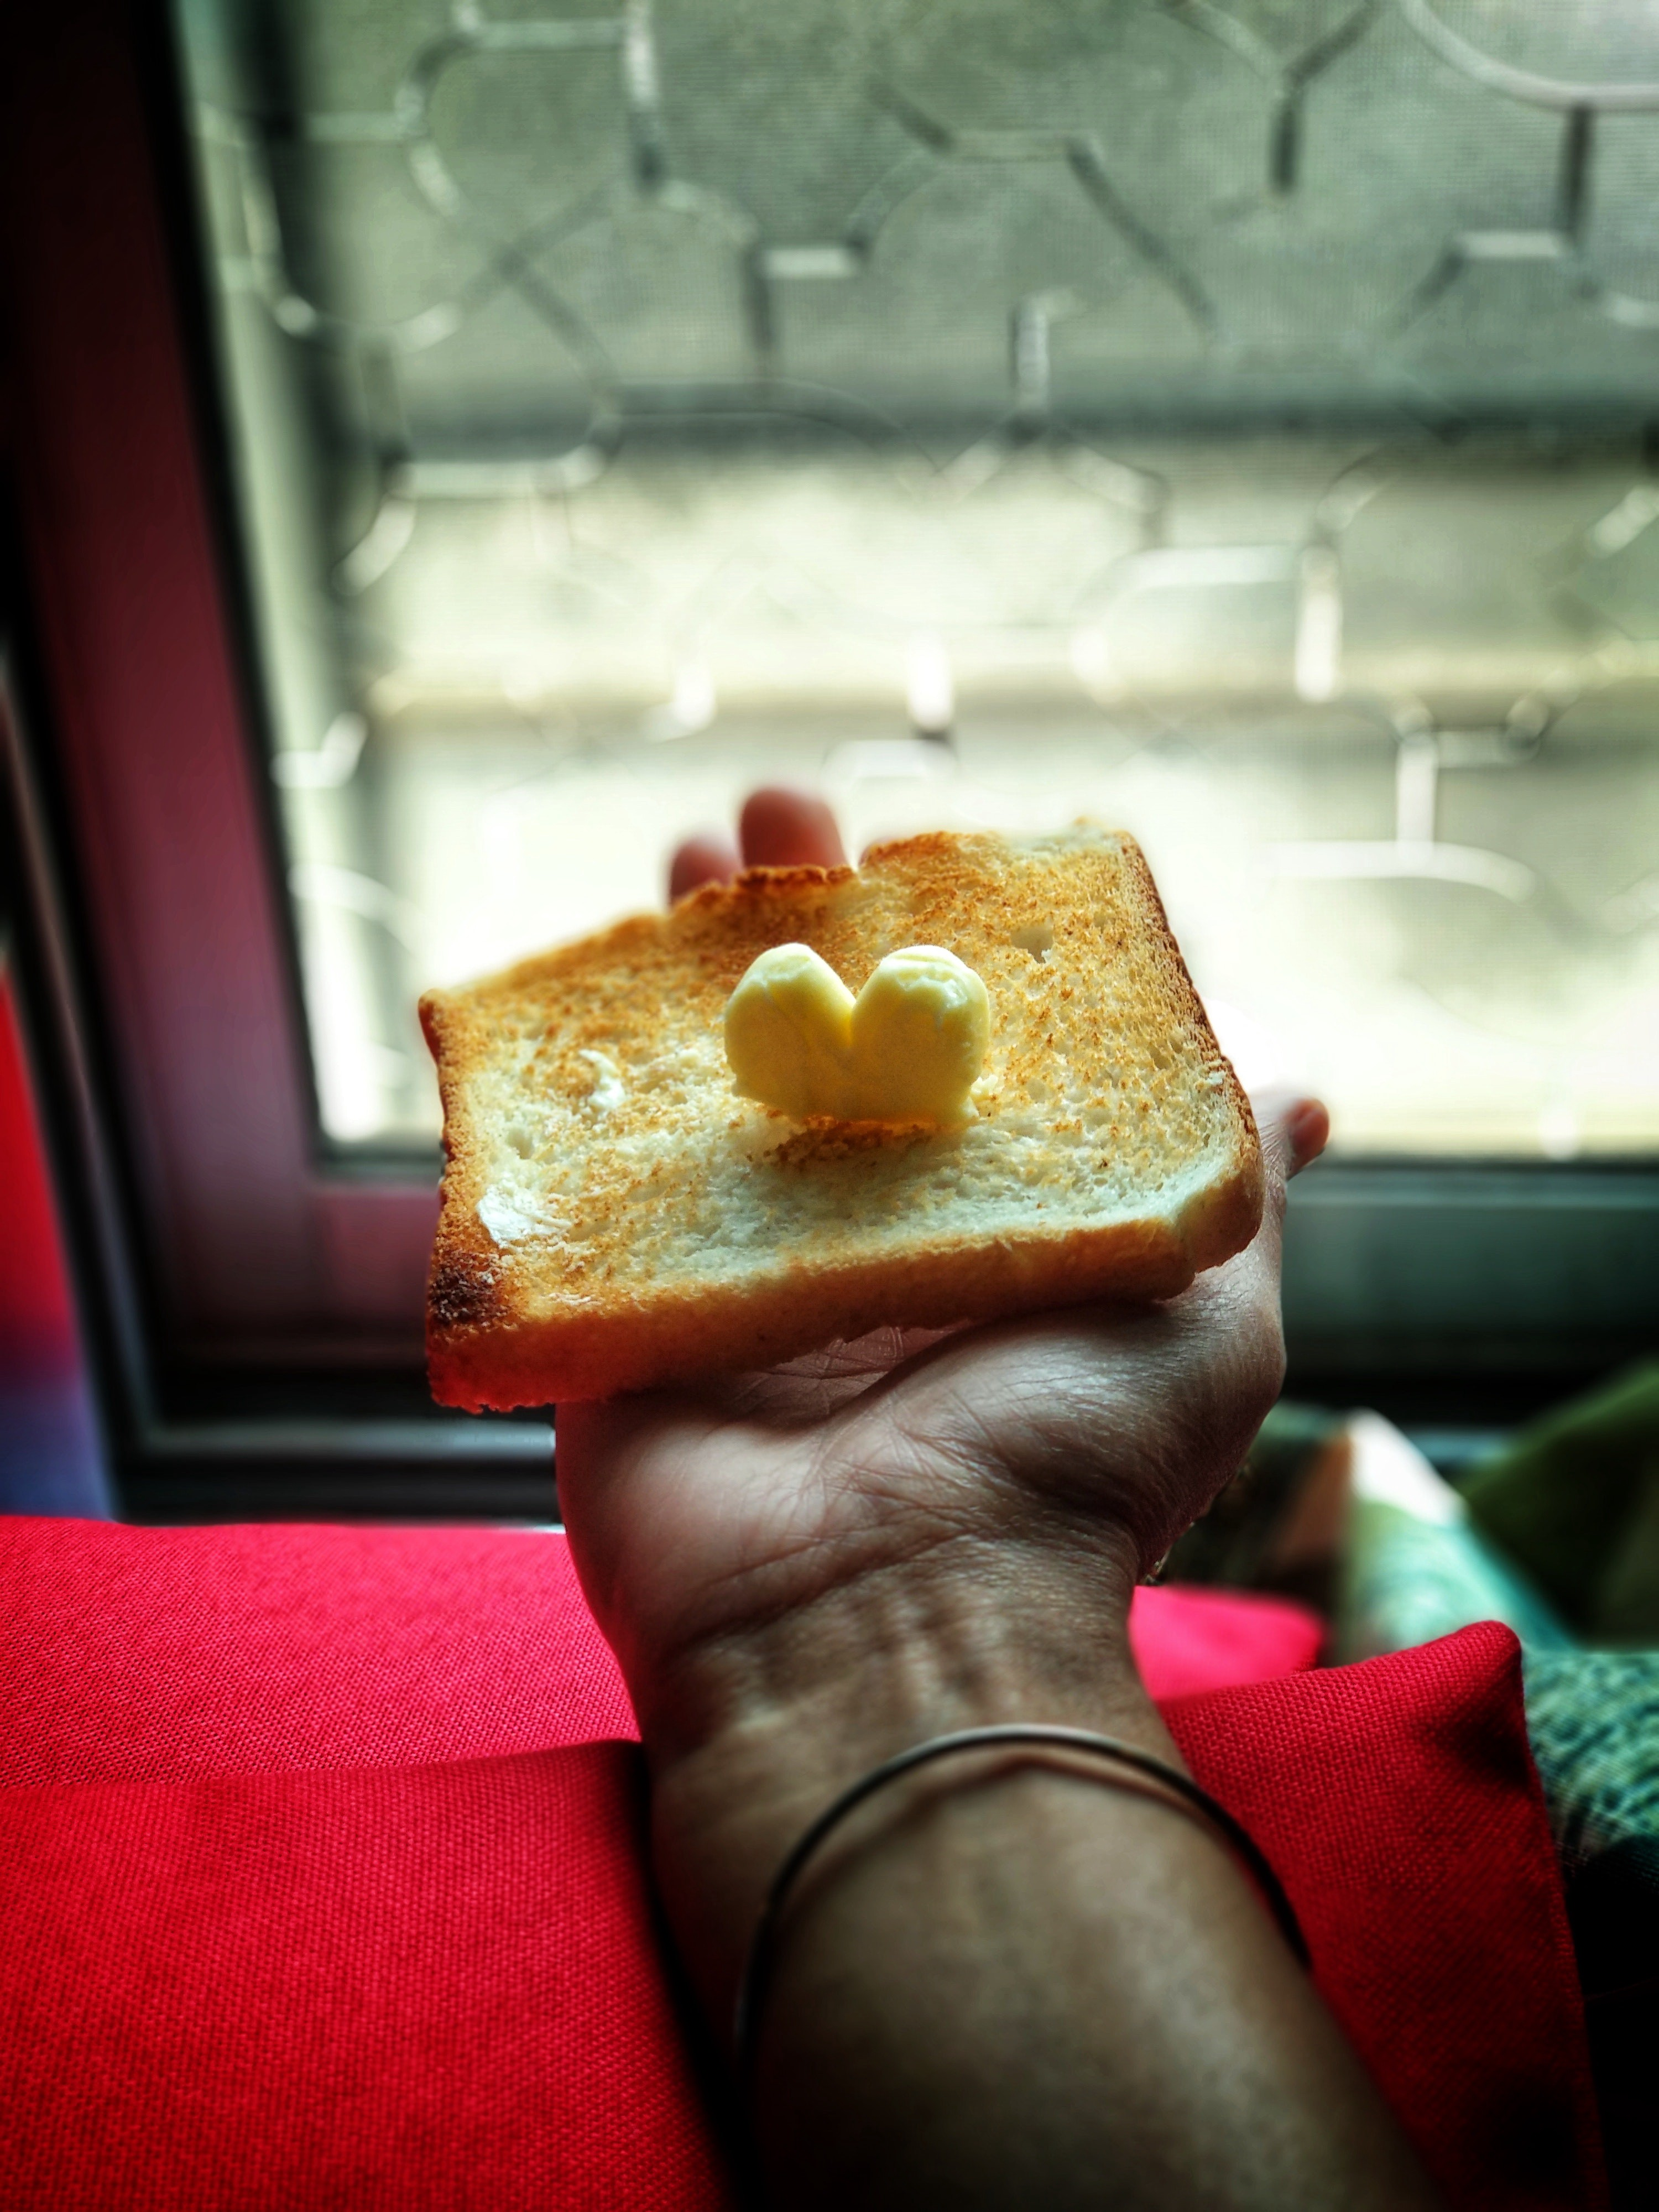 Person holding a piece of toasted bread with a small knob of unmelted butter on it.